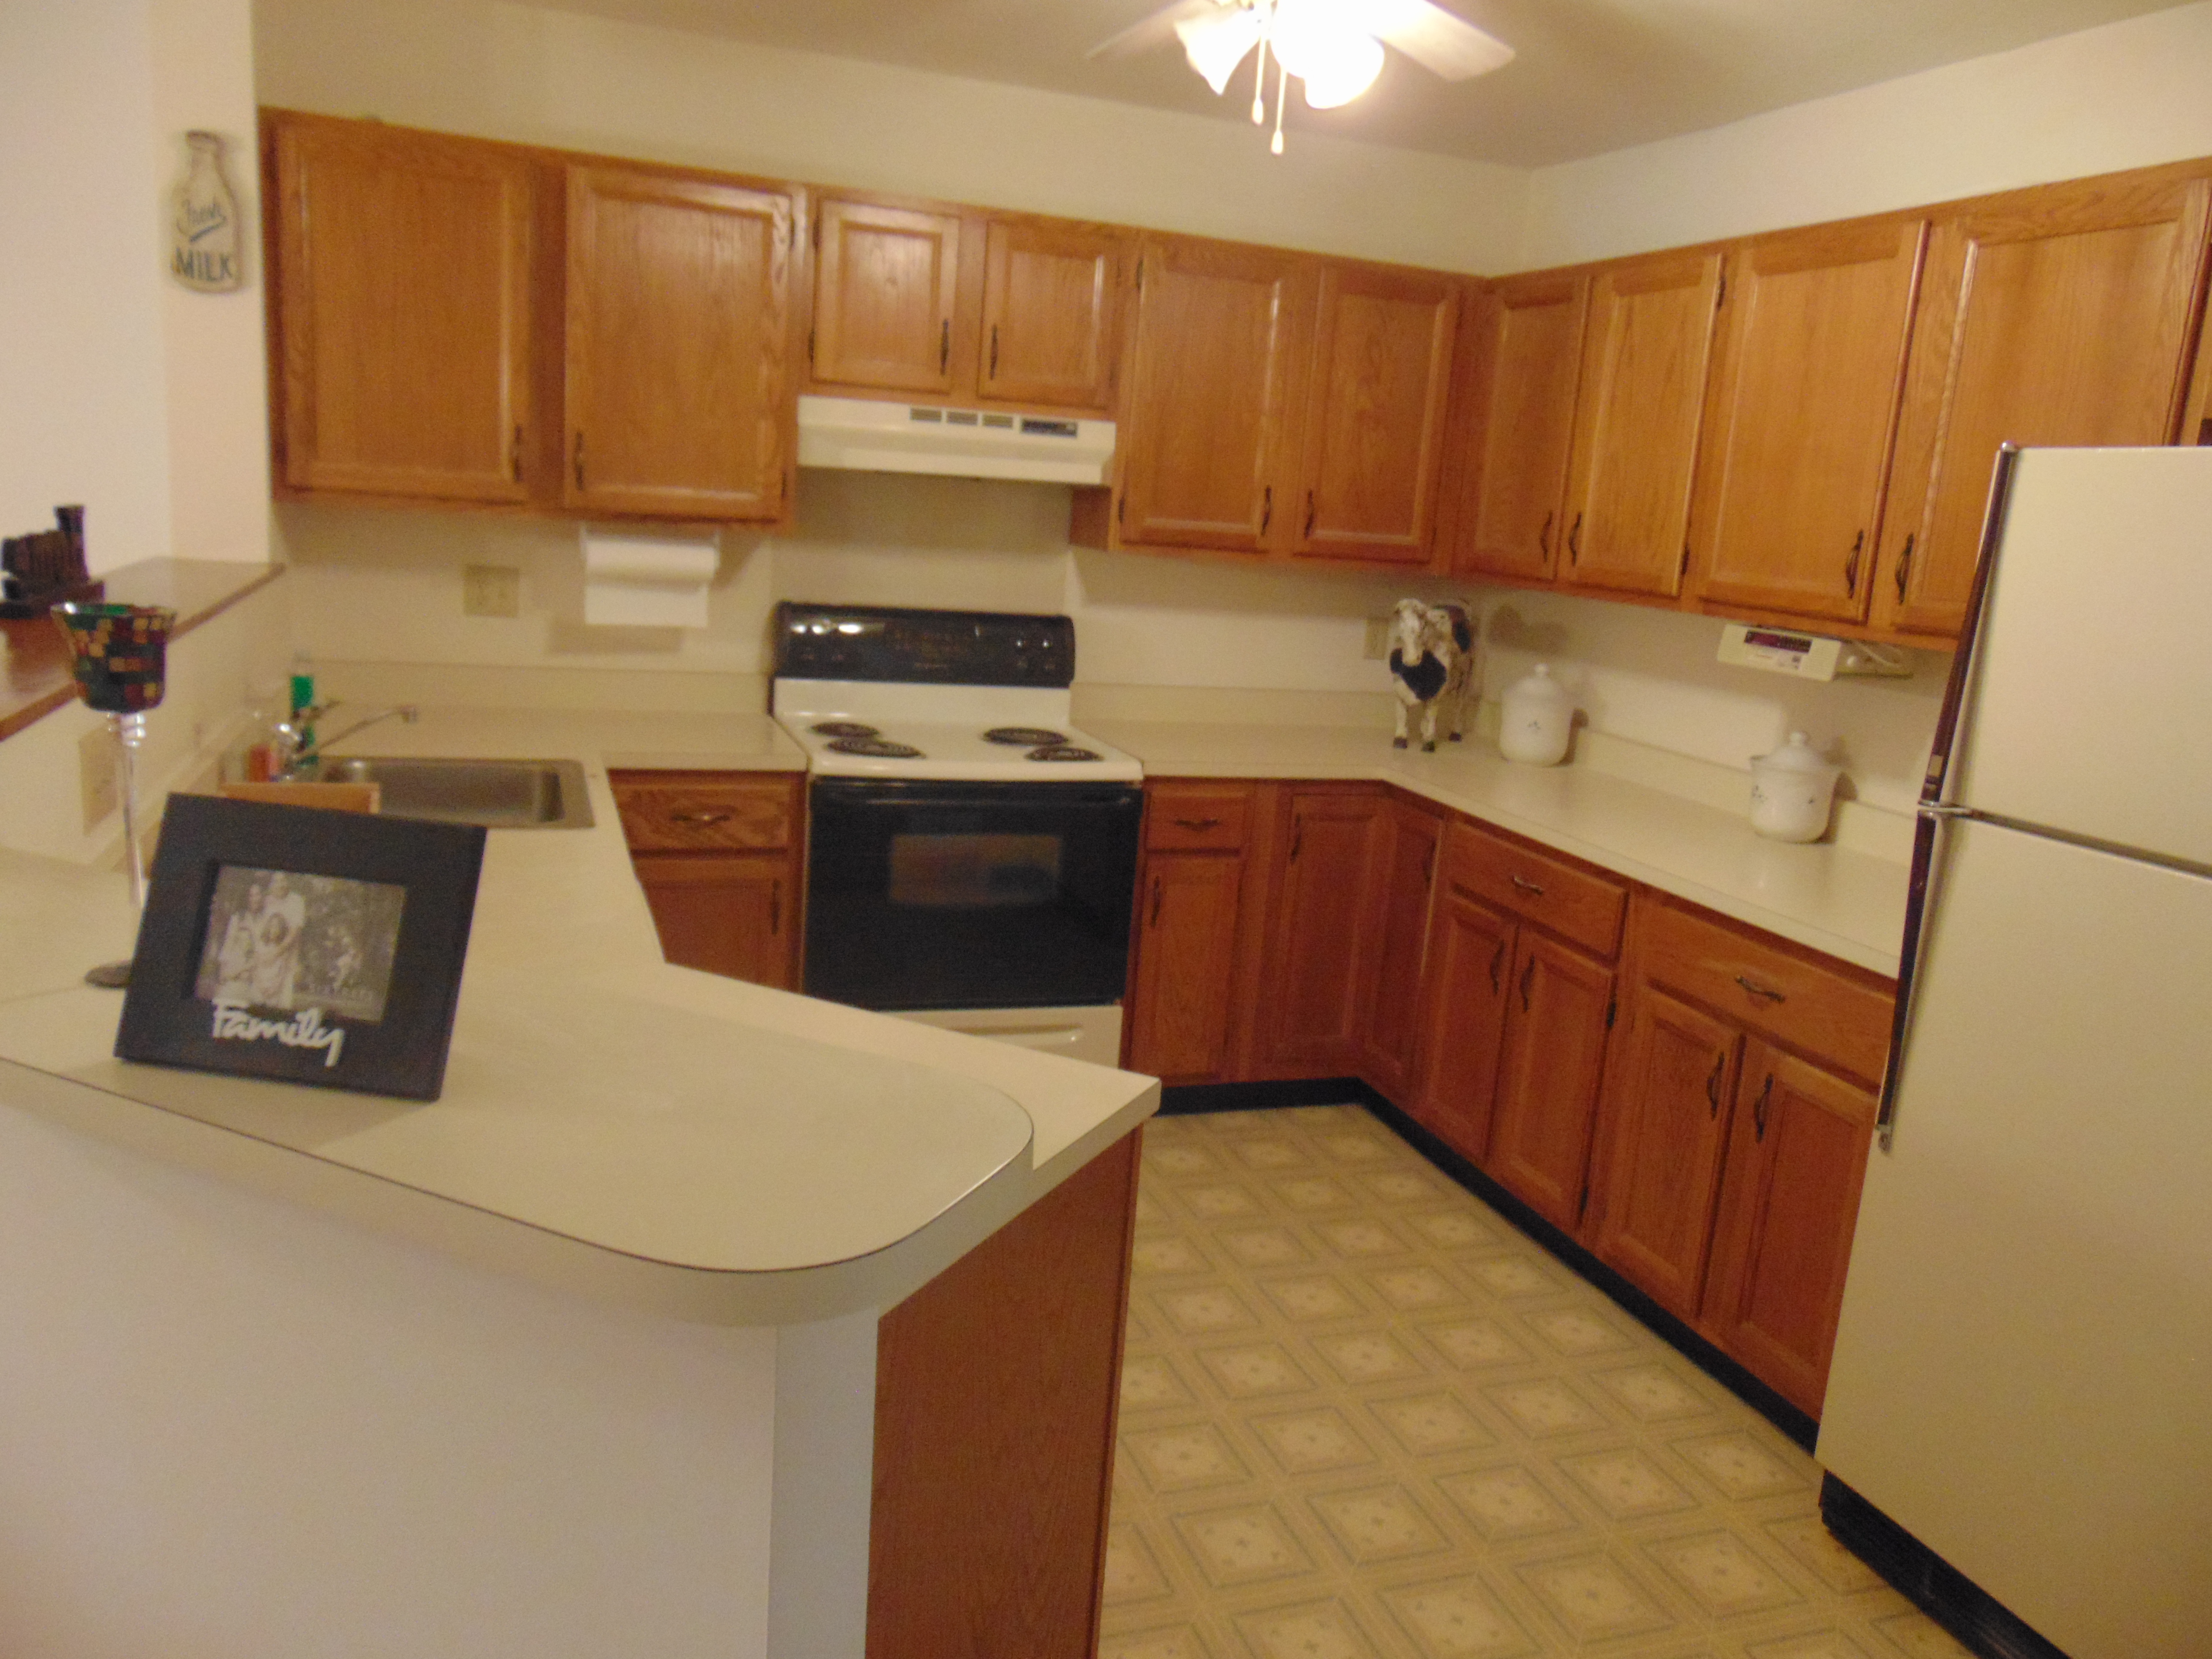 Kitchen cabinets danbury ct - Just Sold At Park Brook Condosdanbury Ct Kitchen Cabinets Danbury